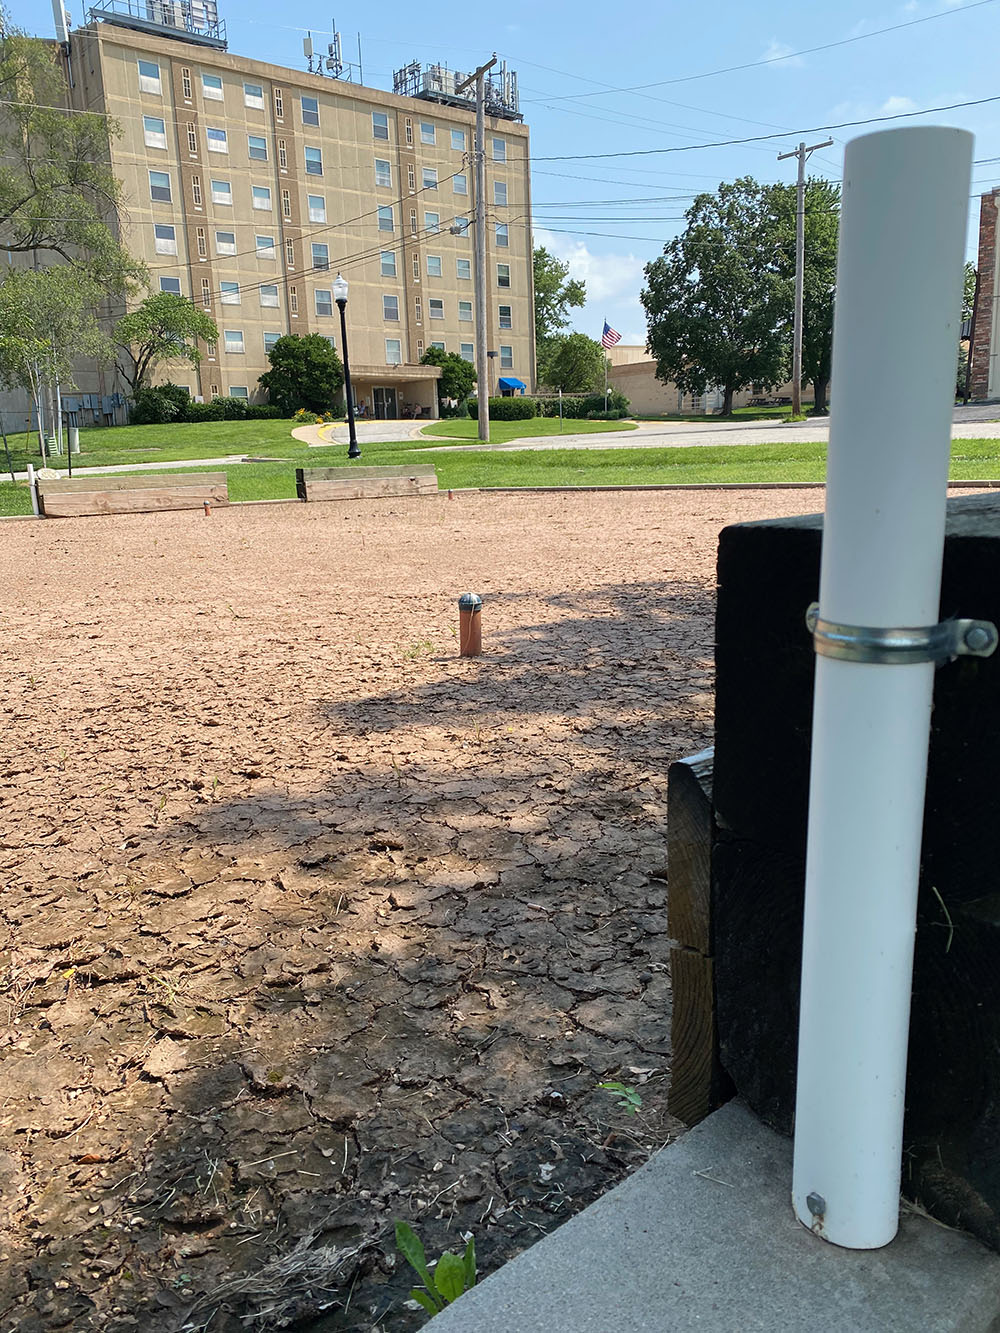 Rolle bolle court at Sister Cities Park in Shawnee, Kansas